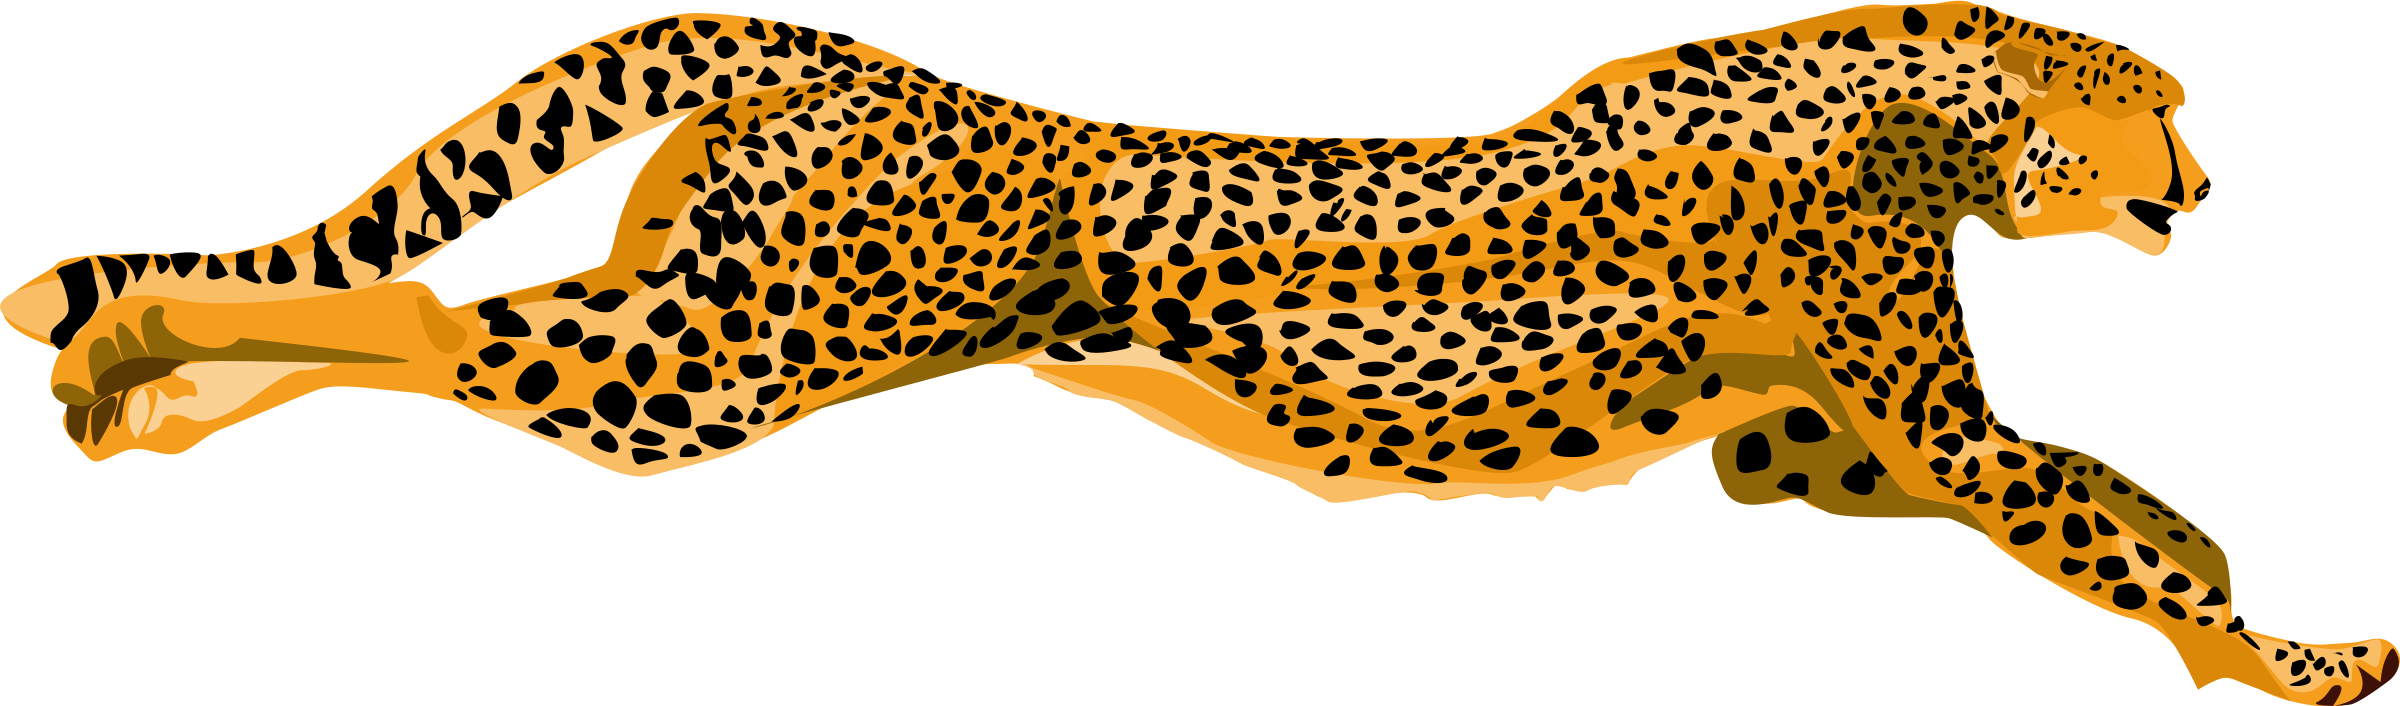 Cartoon cheetah png. Leopard icons free and